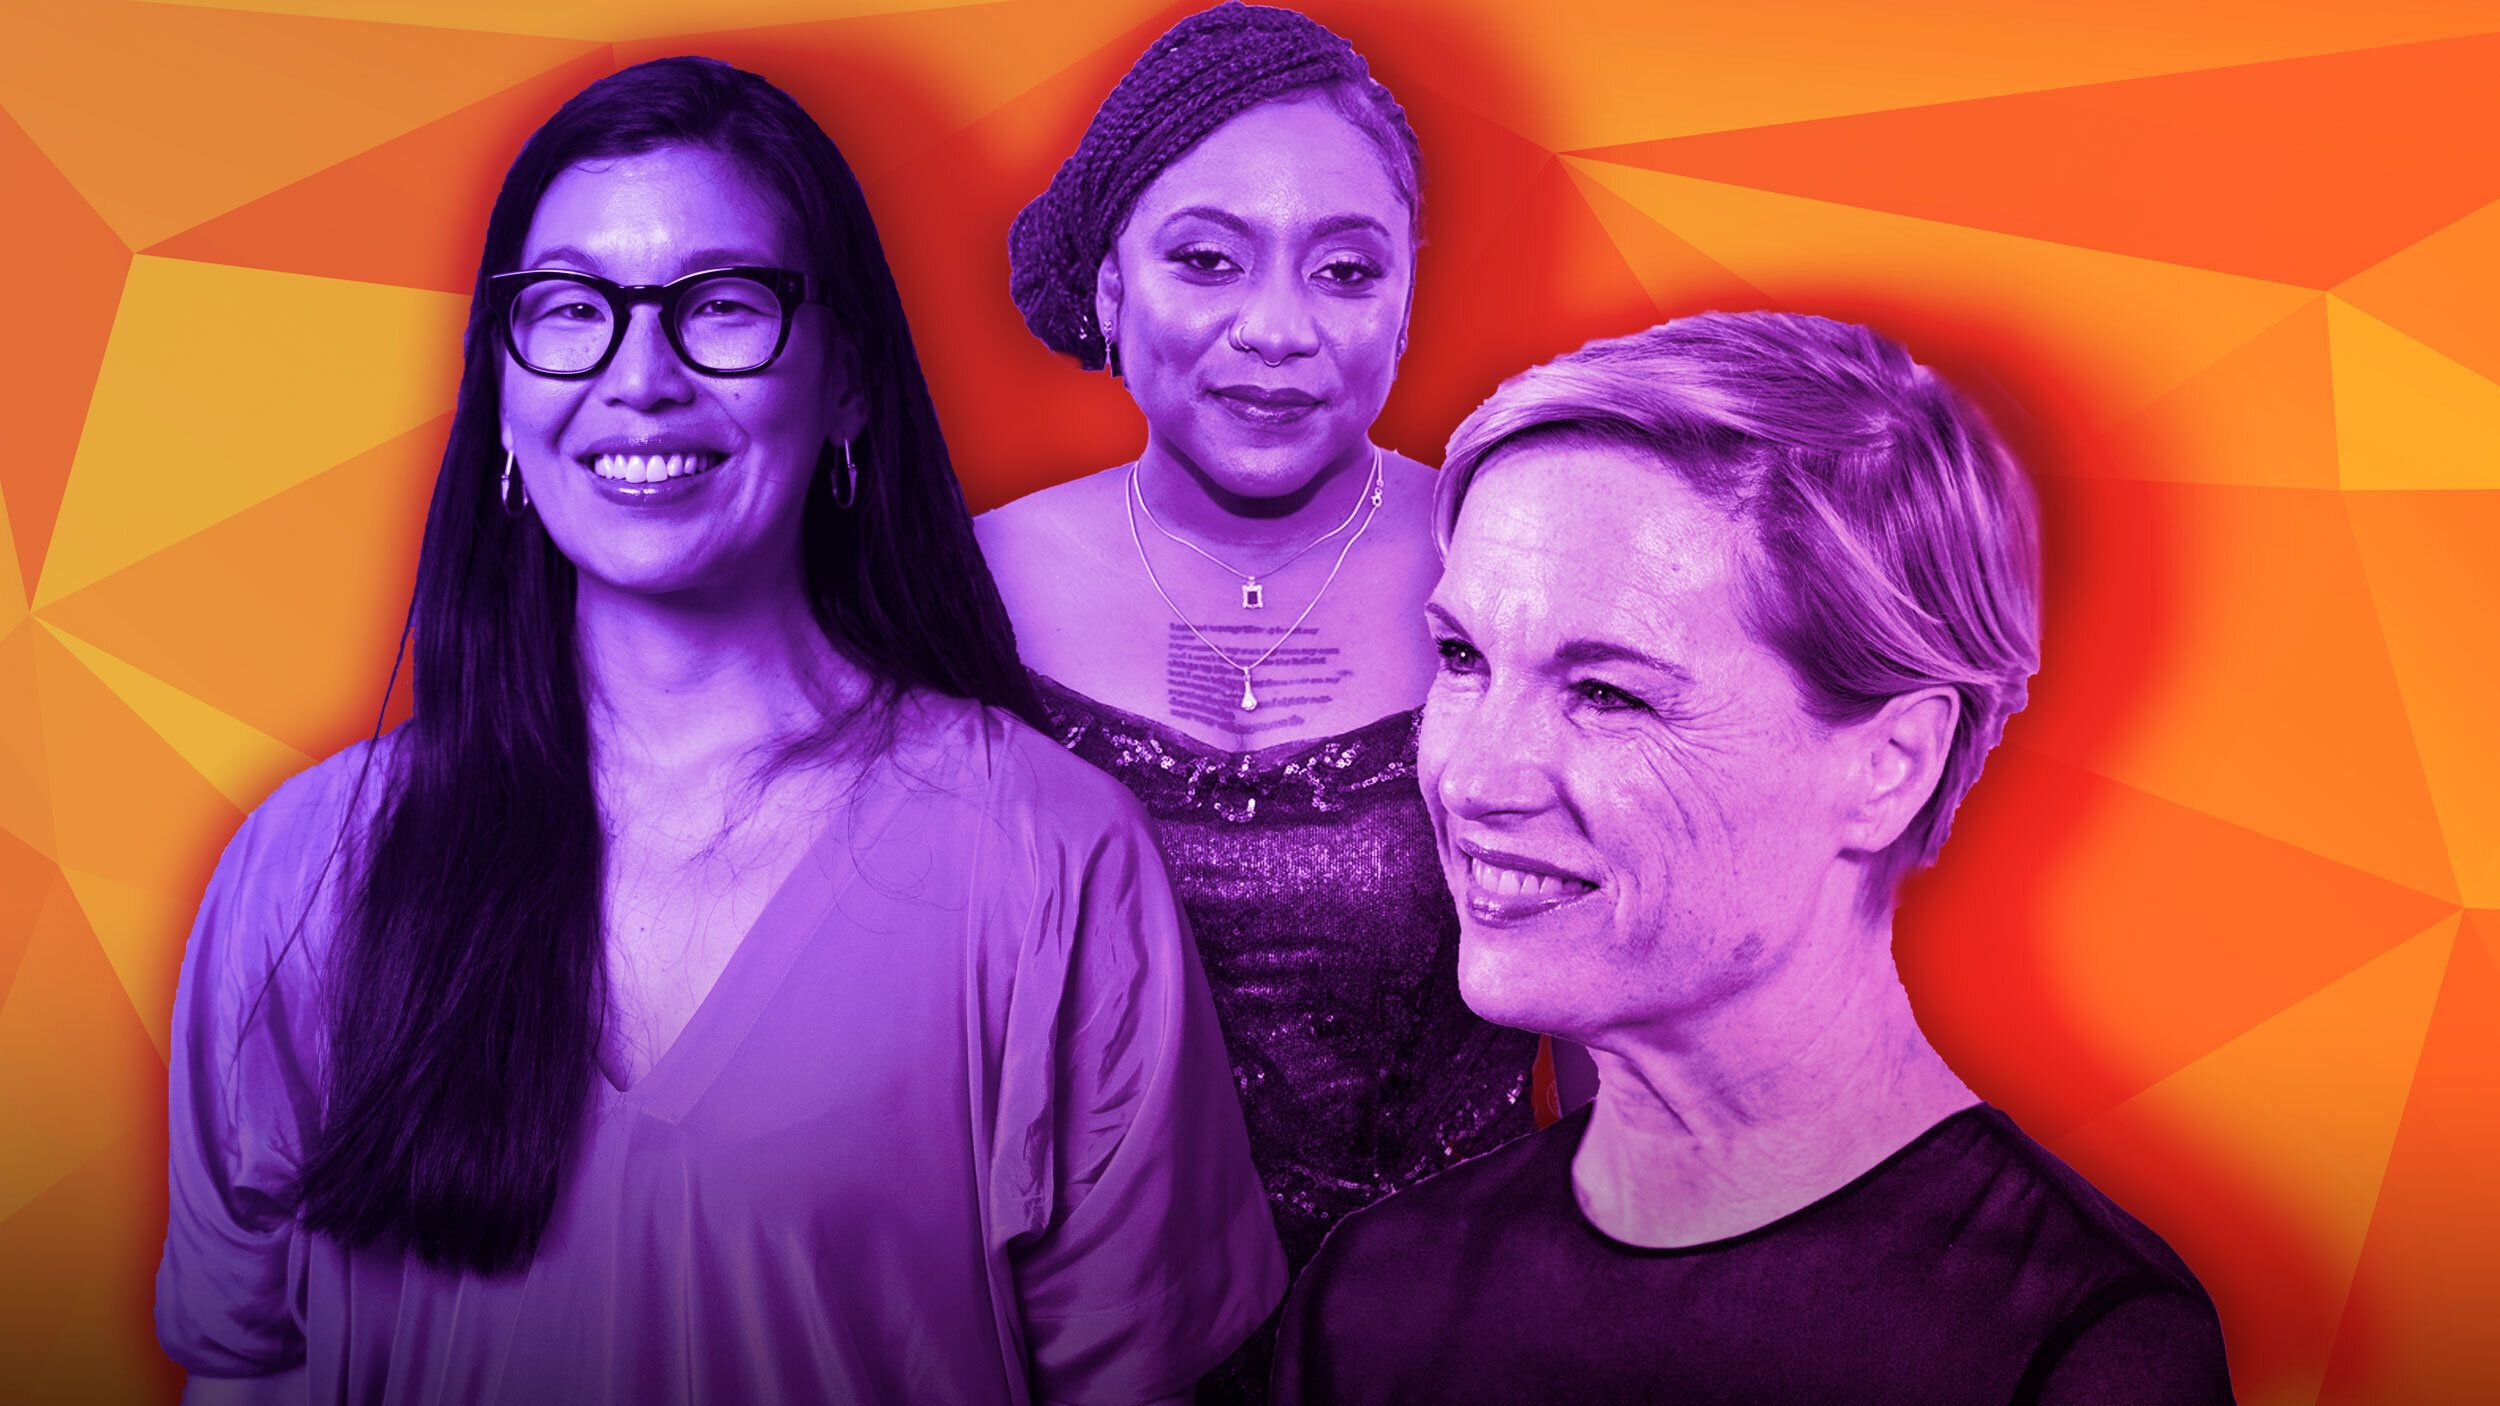 Prominent Activists Launch Supermajority To Mobilize Women For 2020 And